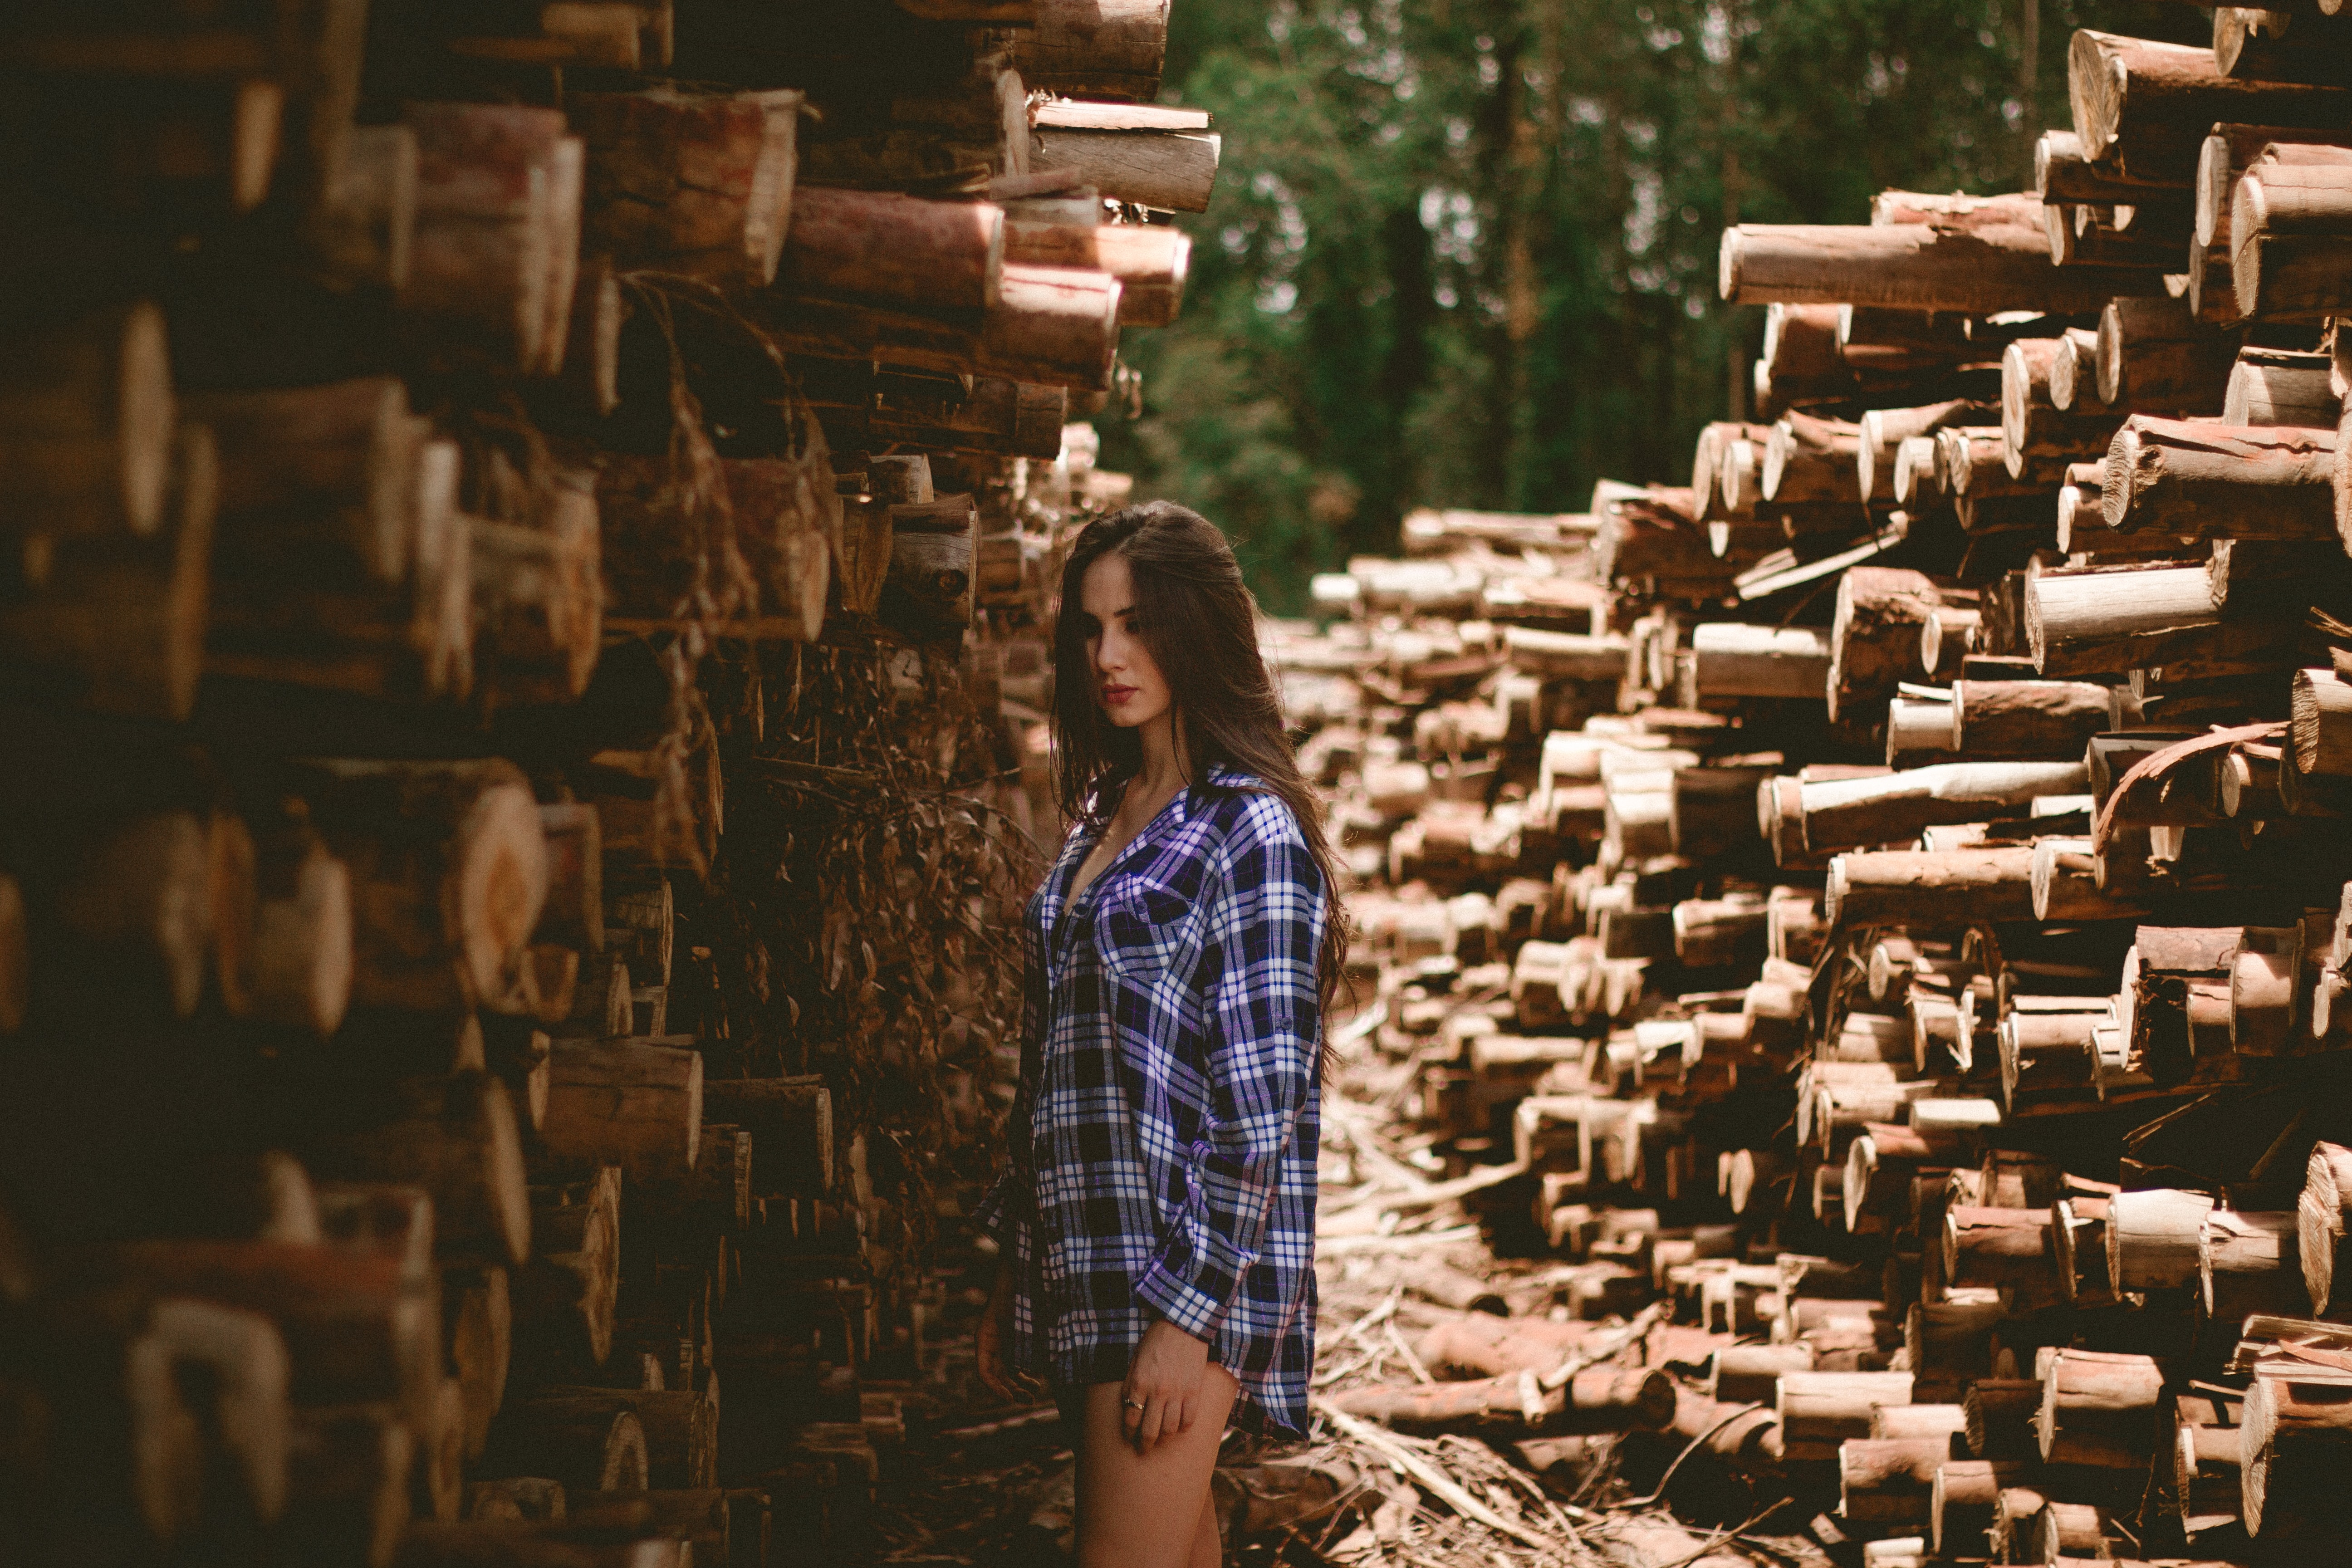 A woman in a plaid shirt stands aside stacks of lumber